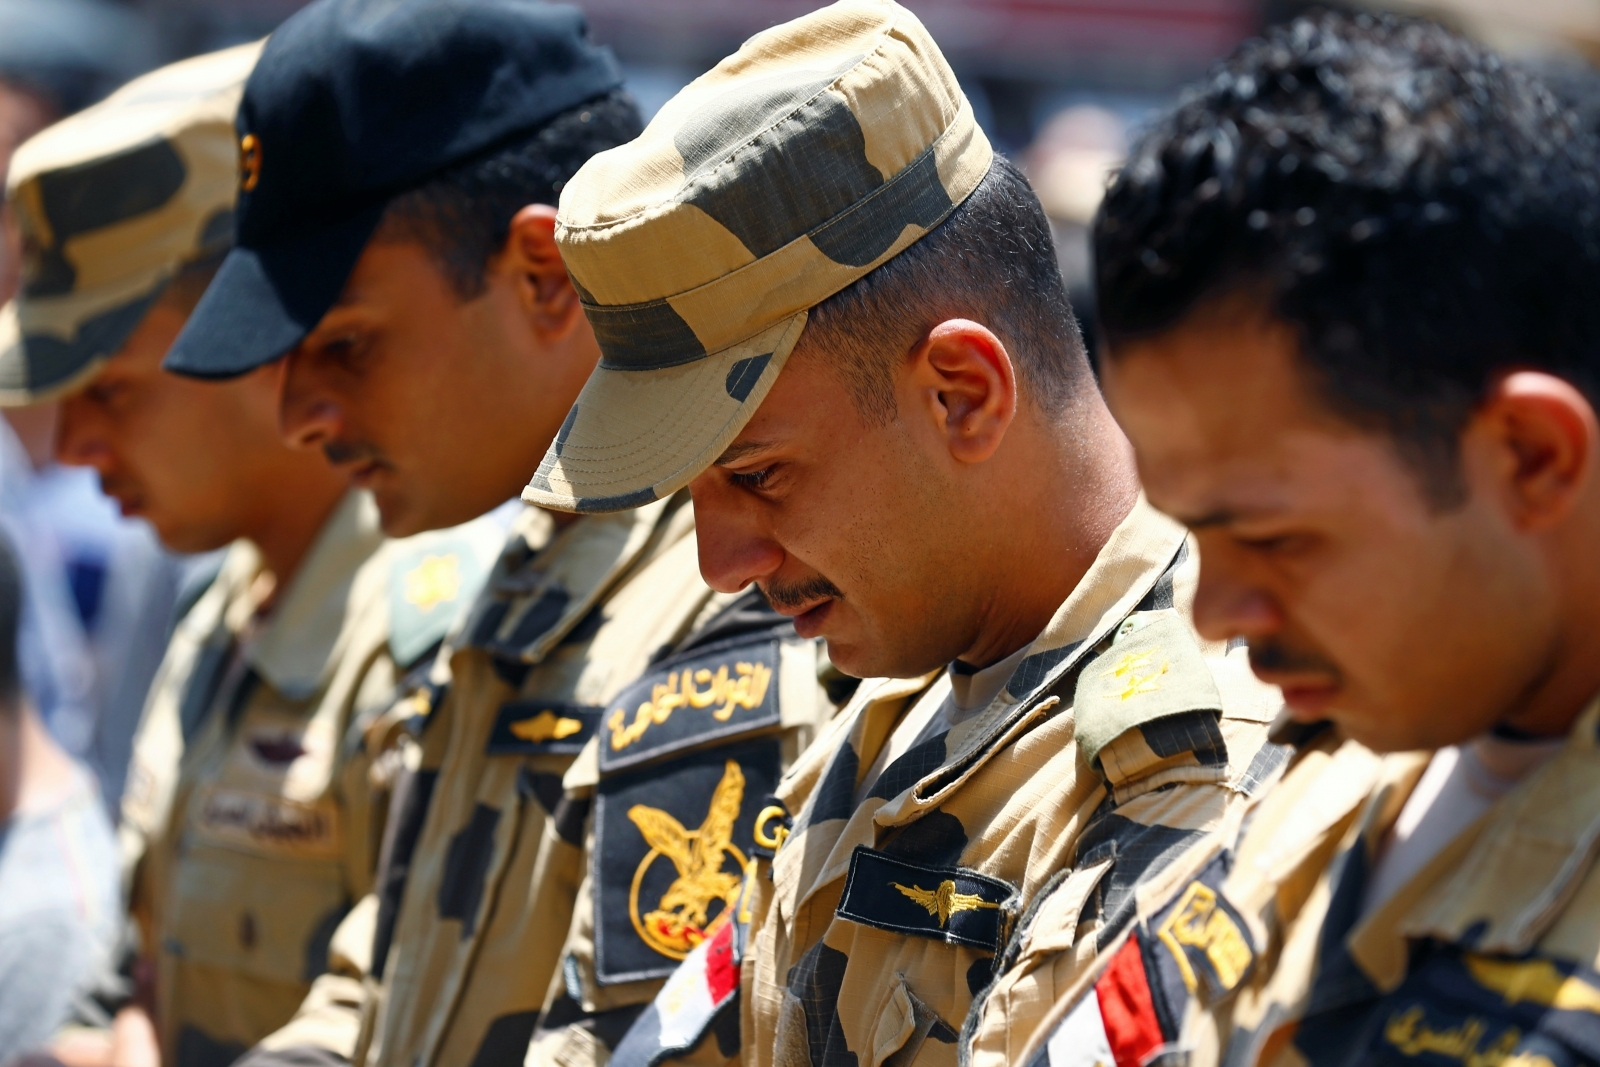 Egypt mosque explosion: Bombing in North Sinai kills at least 54 and injures more than 70